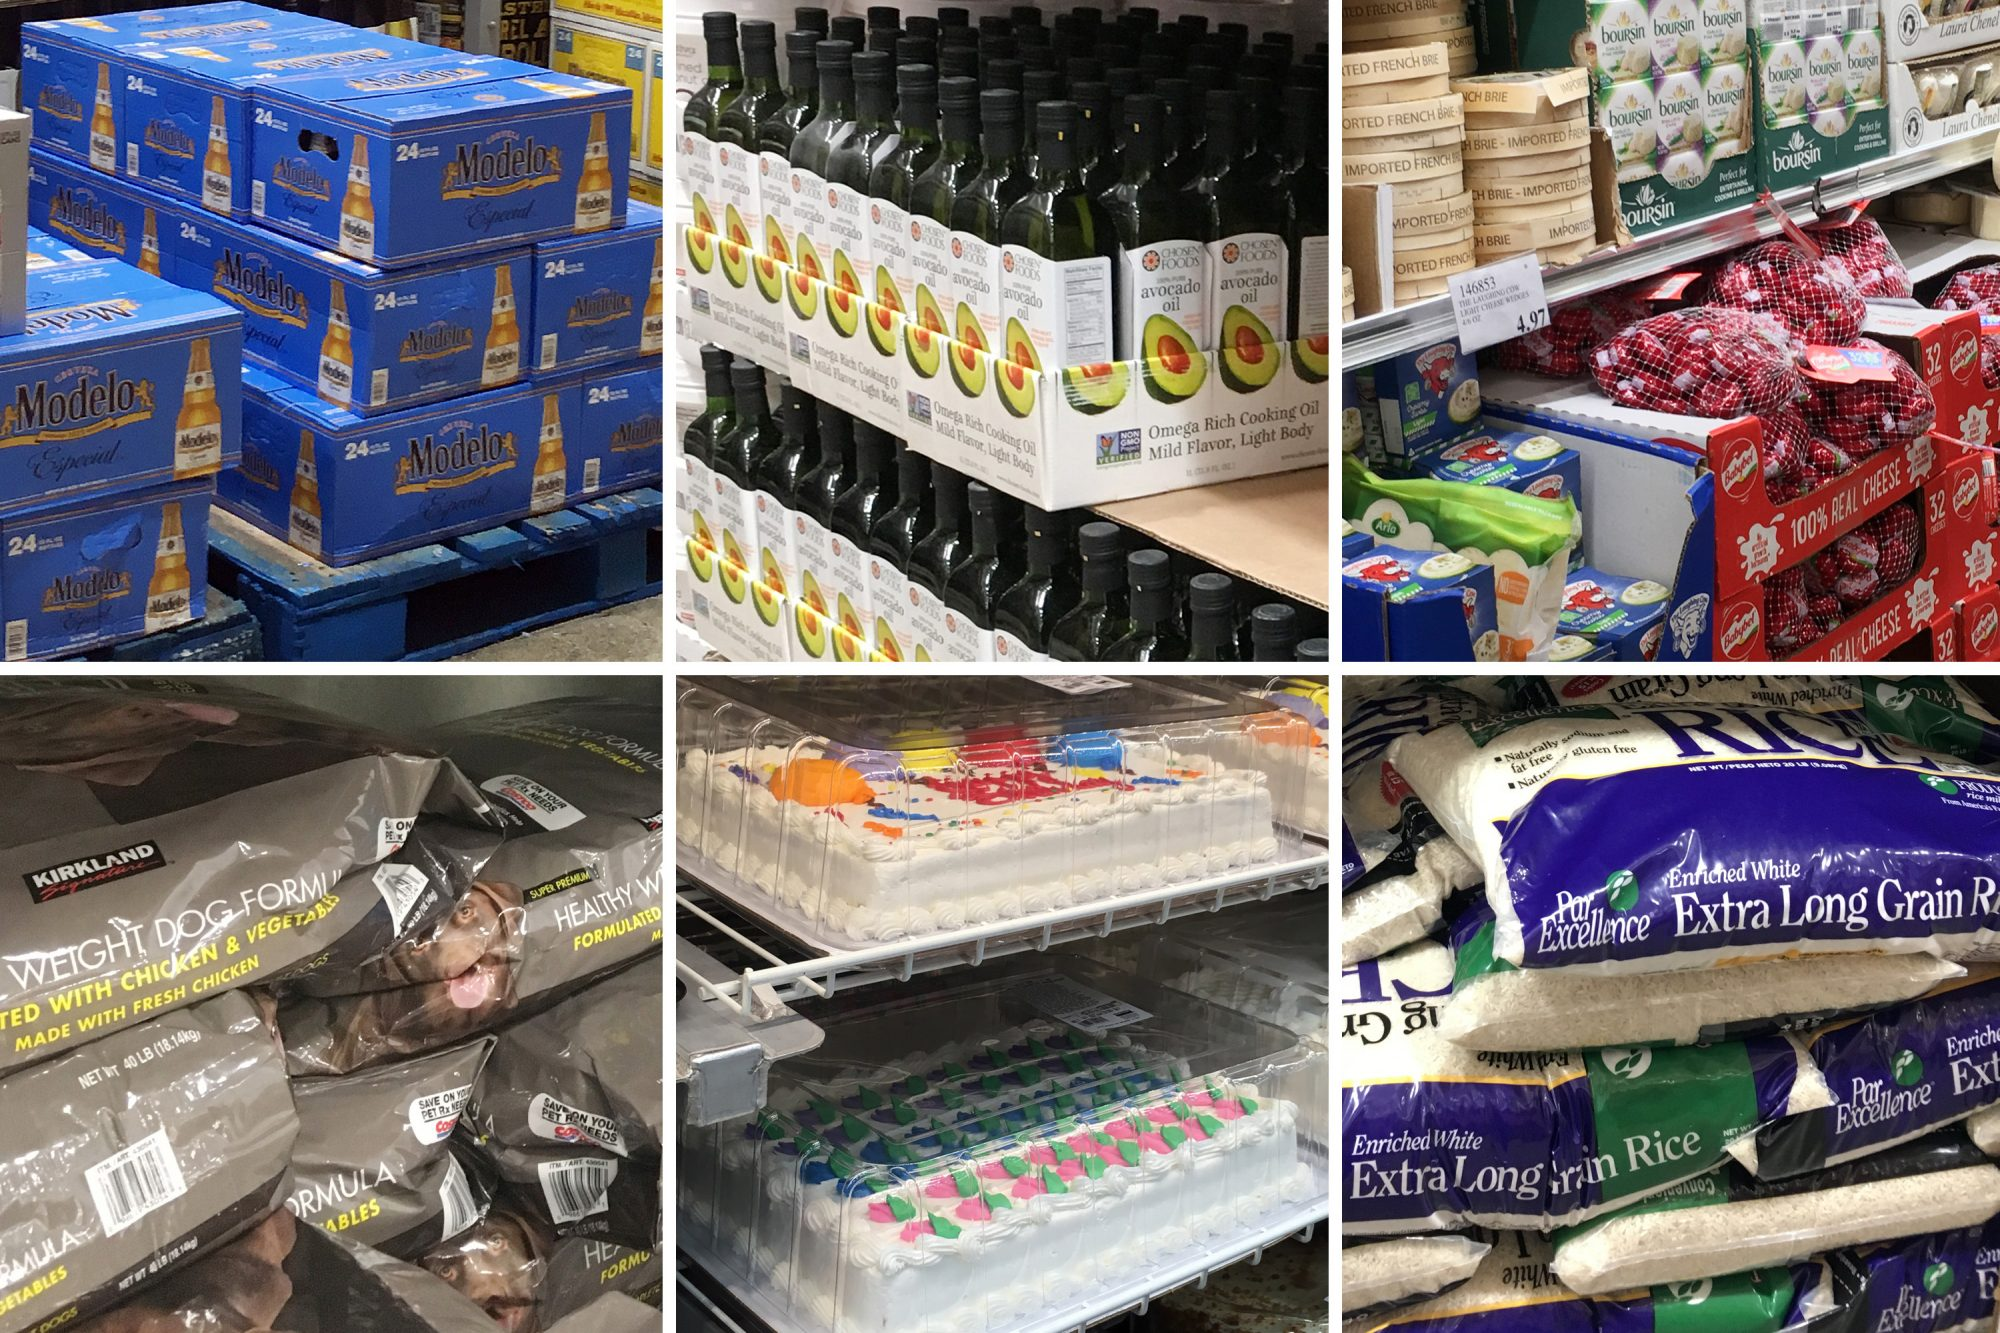 7 Costco Items That Are ALWAYS Cheaper Than the Grocery Store Version, According to a Bargain Shopping Expert